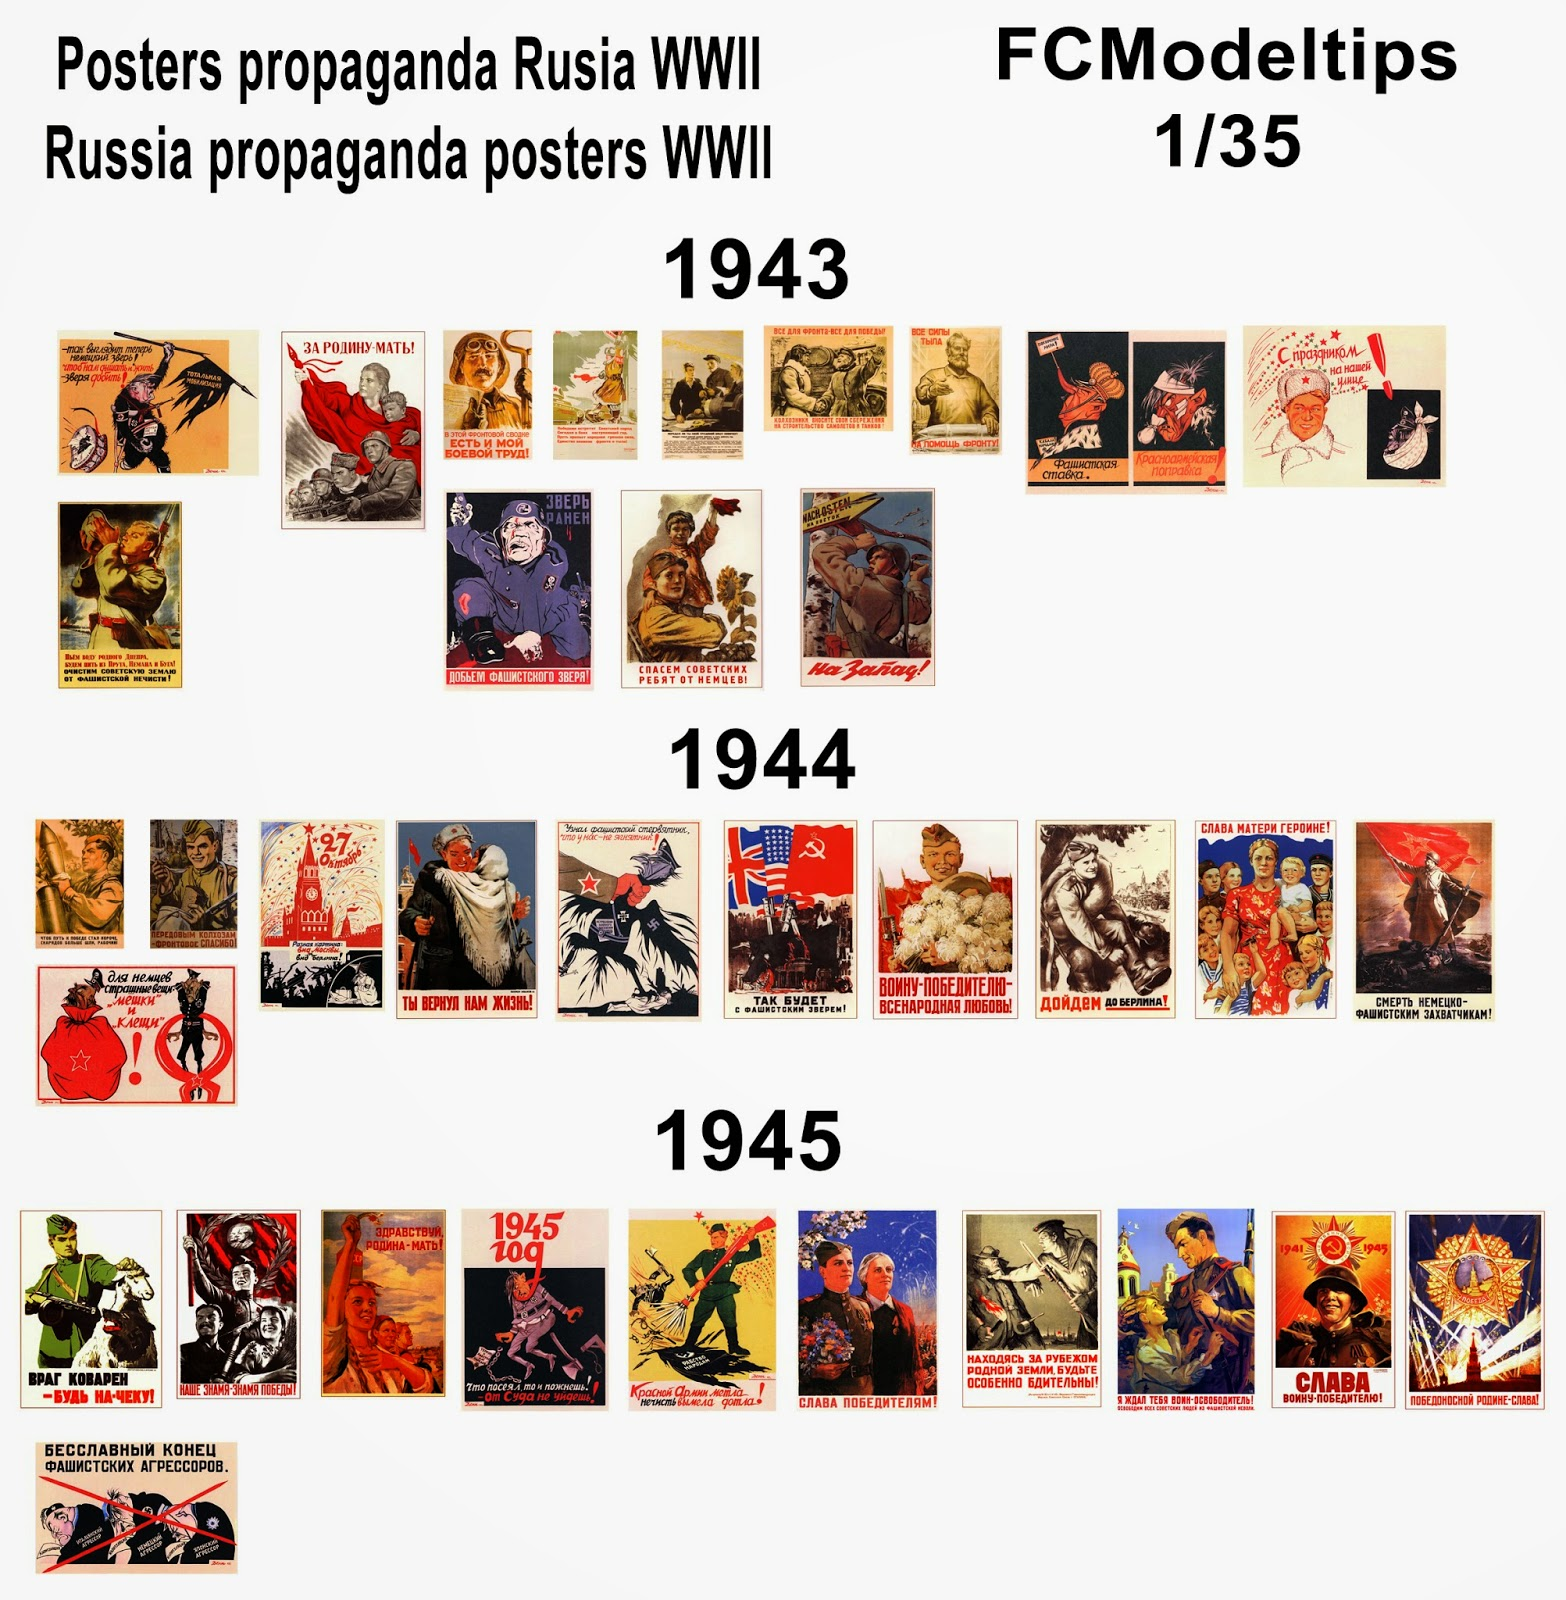 fcmodeltips federico collada posters rusia soviet WWII